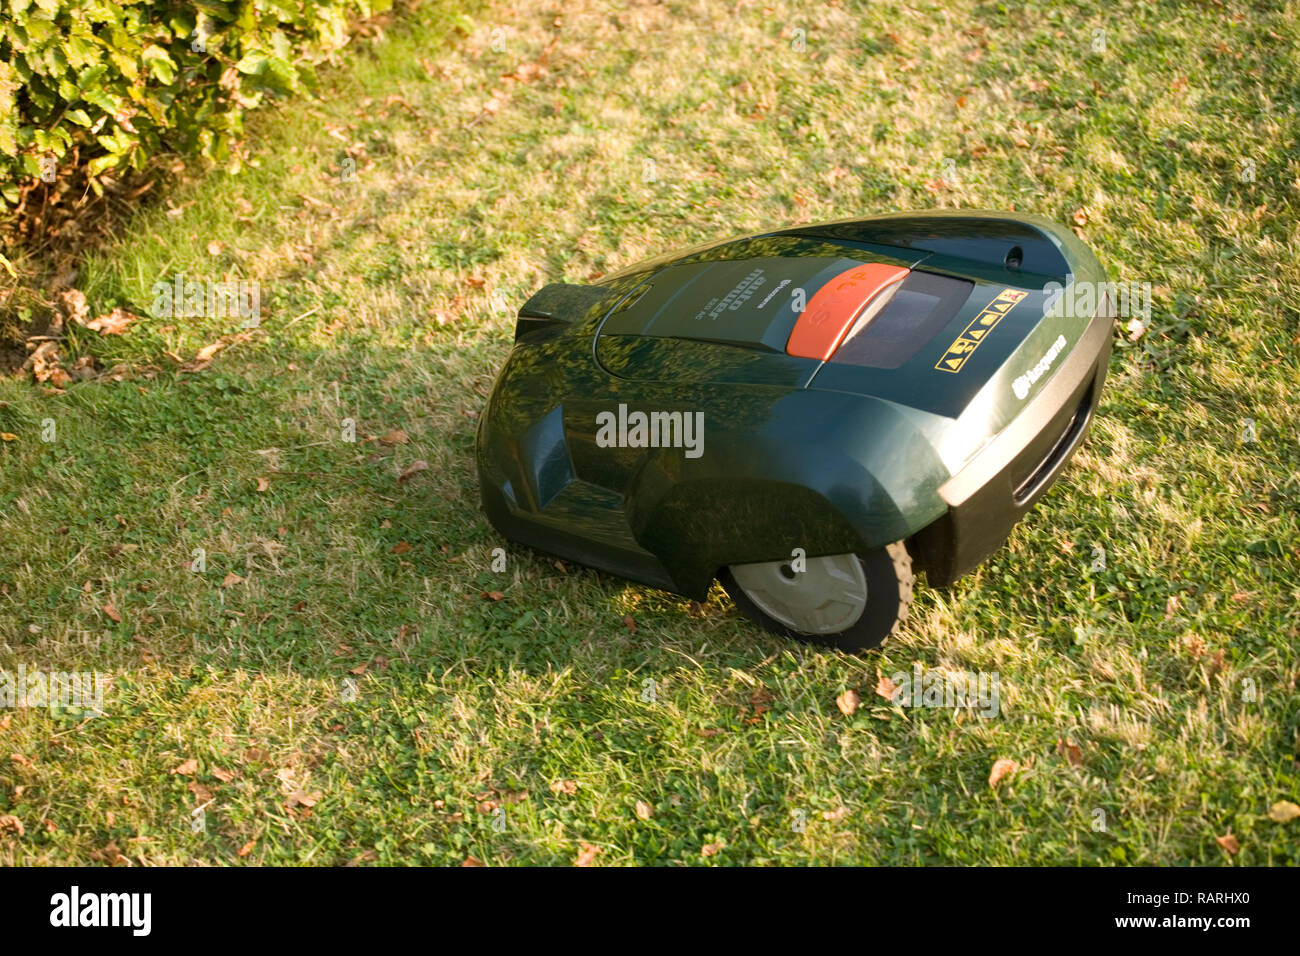 Automatic robot lawn mower cutting grass and heading towards a hedge - Stock Image